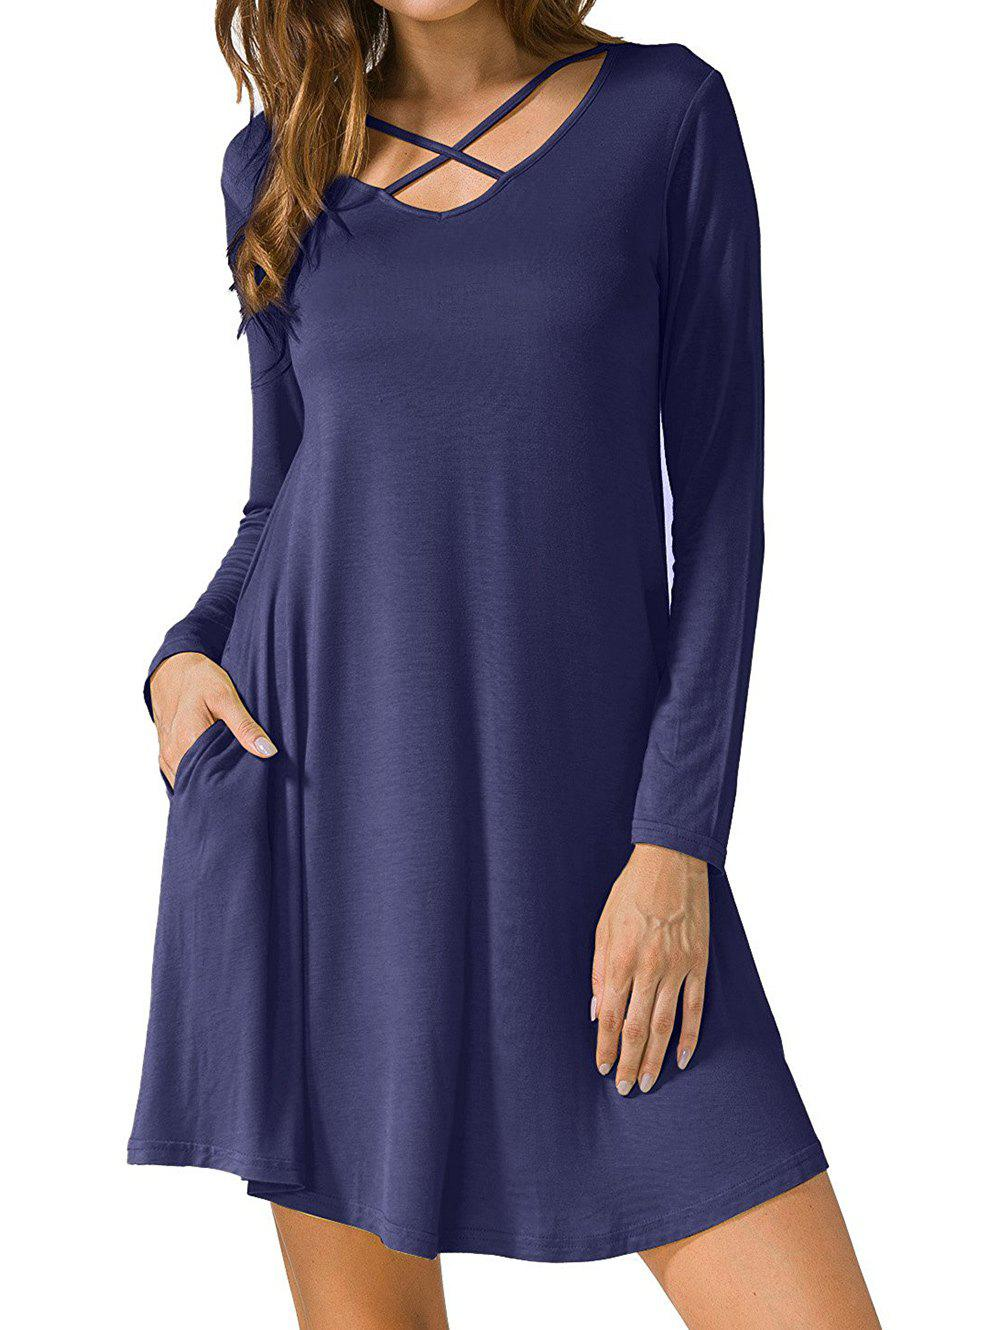 Criss Cross Long Sleeve T Shirt Dress от Dresslily.com INT